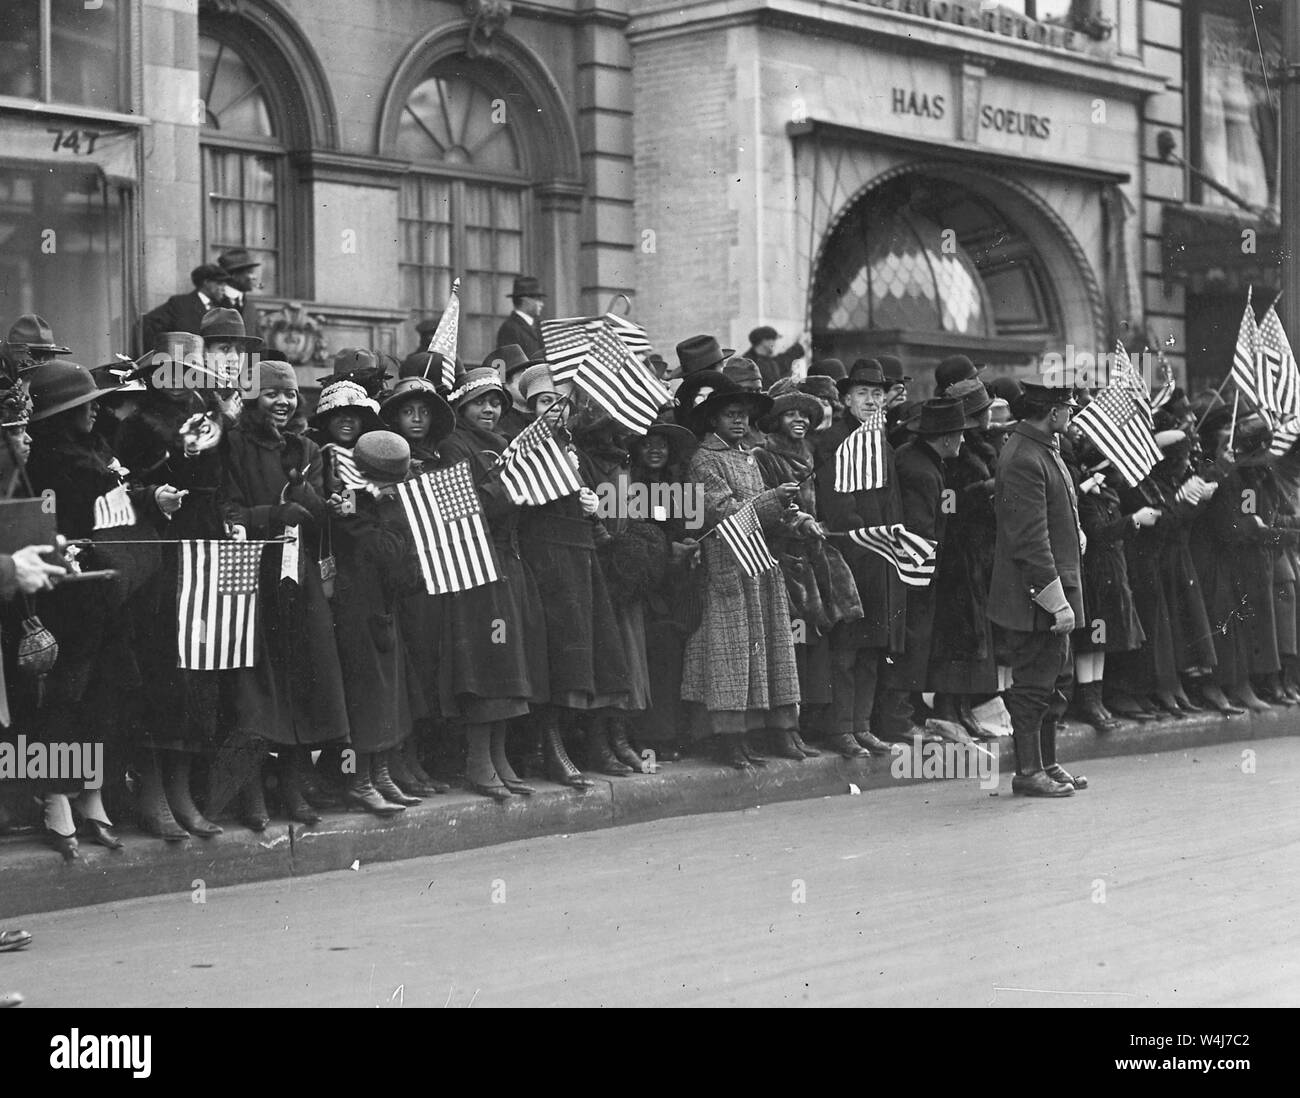 Crowds waiting for the parade of the famous 369th African American Infantry, formerly 15th New York regulars, New York City. Stock Photo